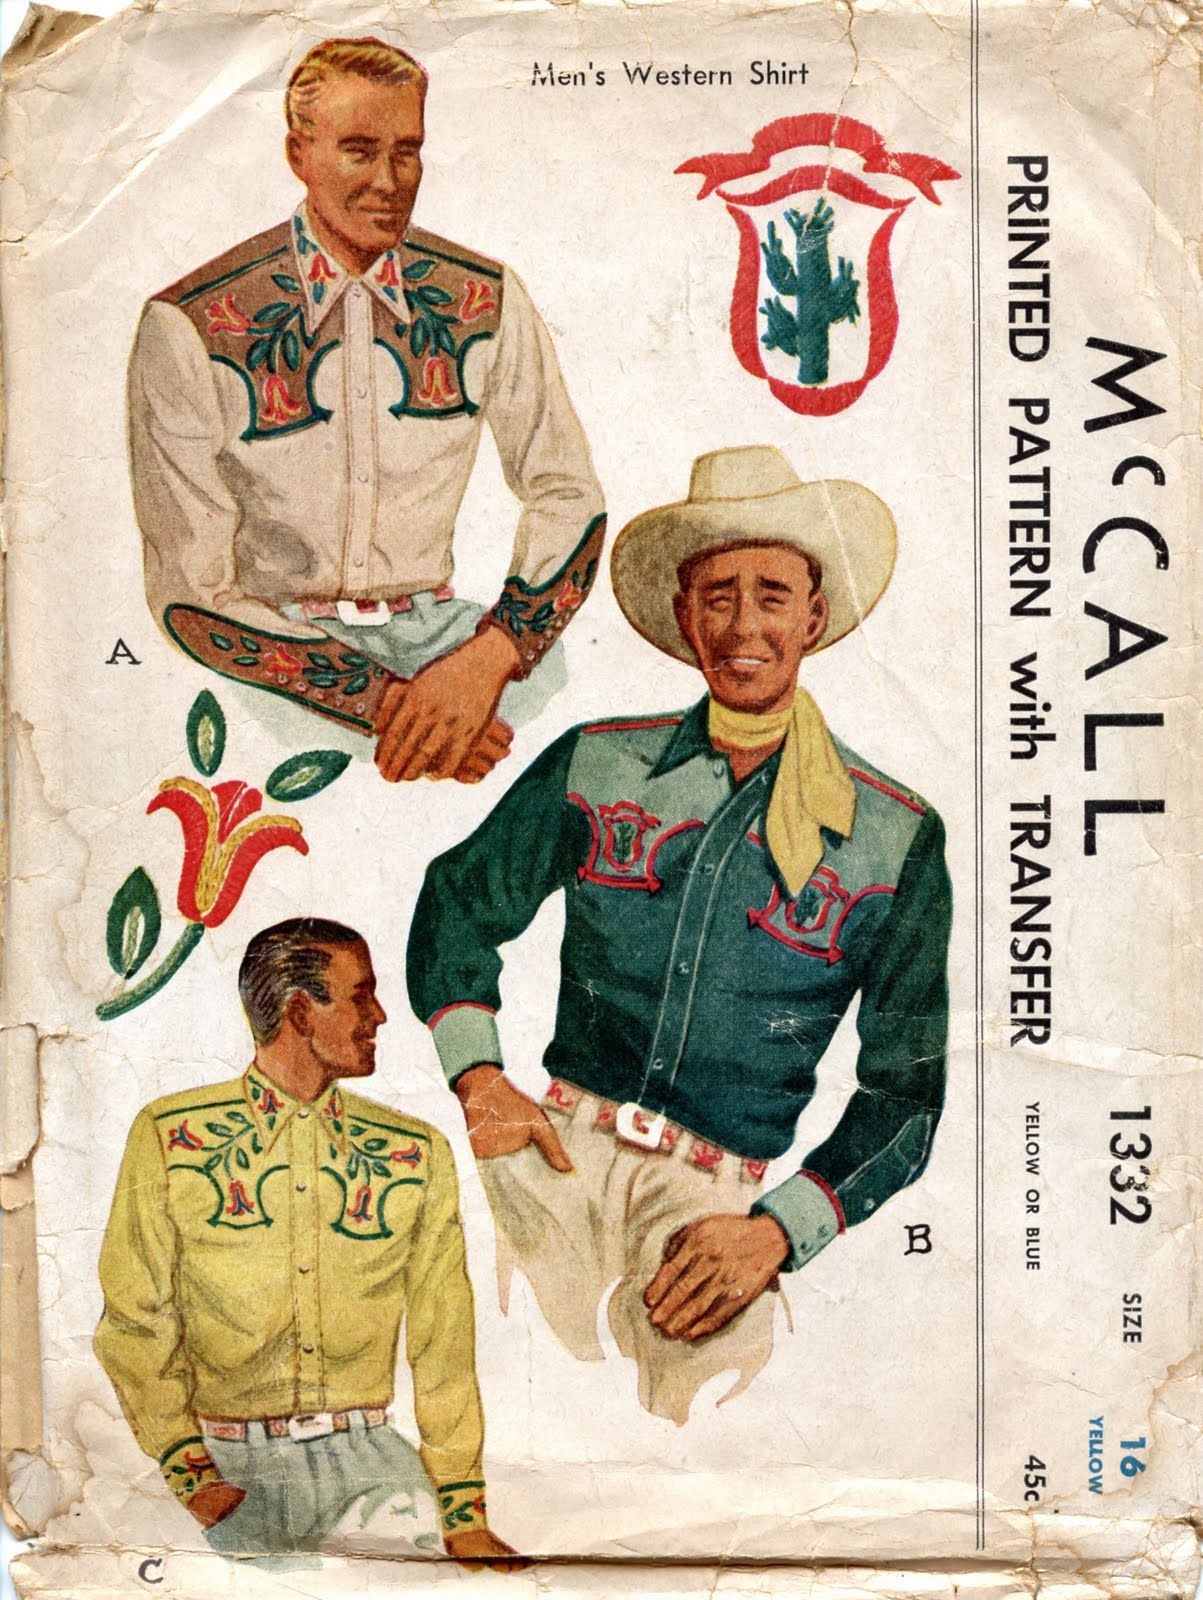 9edb87907b2 Men's vintage western shirt pattern from McCalls | Cowboy clothes ...